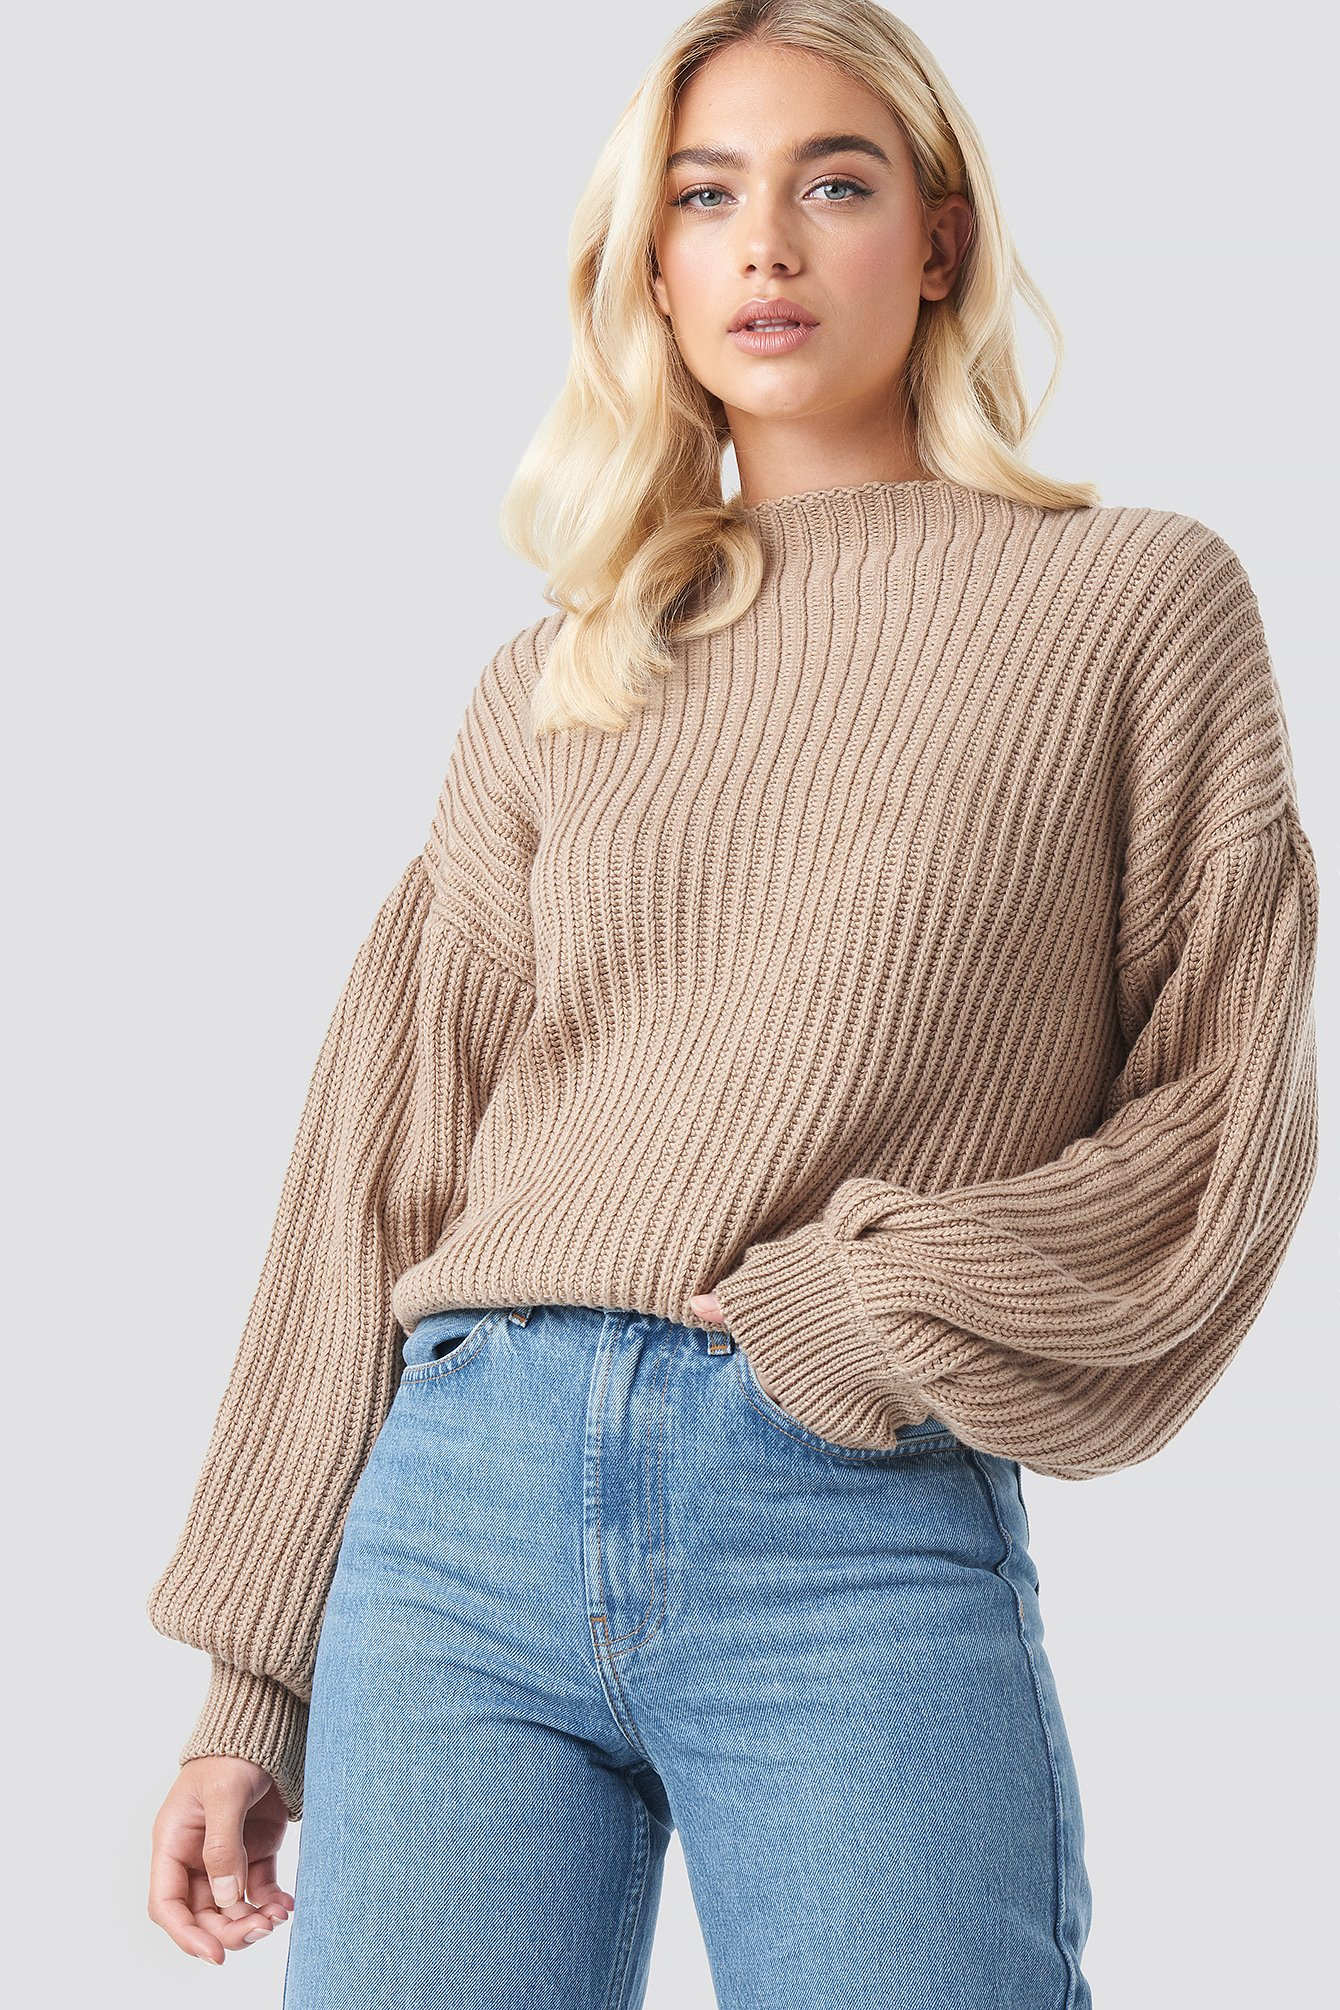 Beige Oversized Trui.Balloon Sleeve Knitted Sweater Beige Na Kd Com